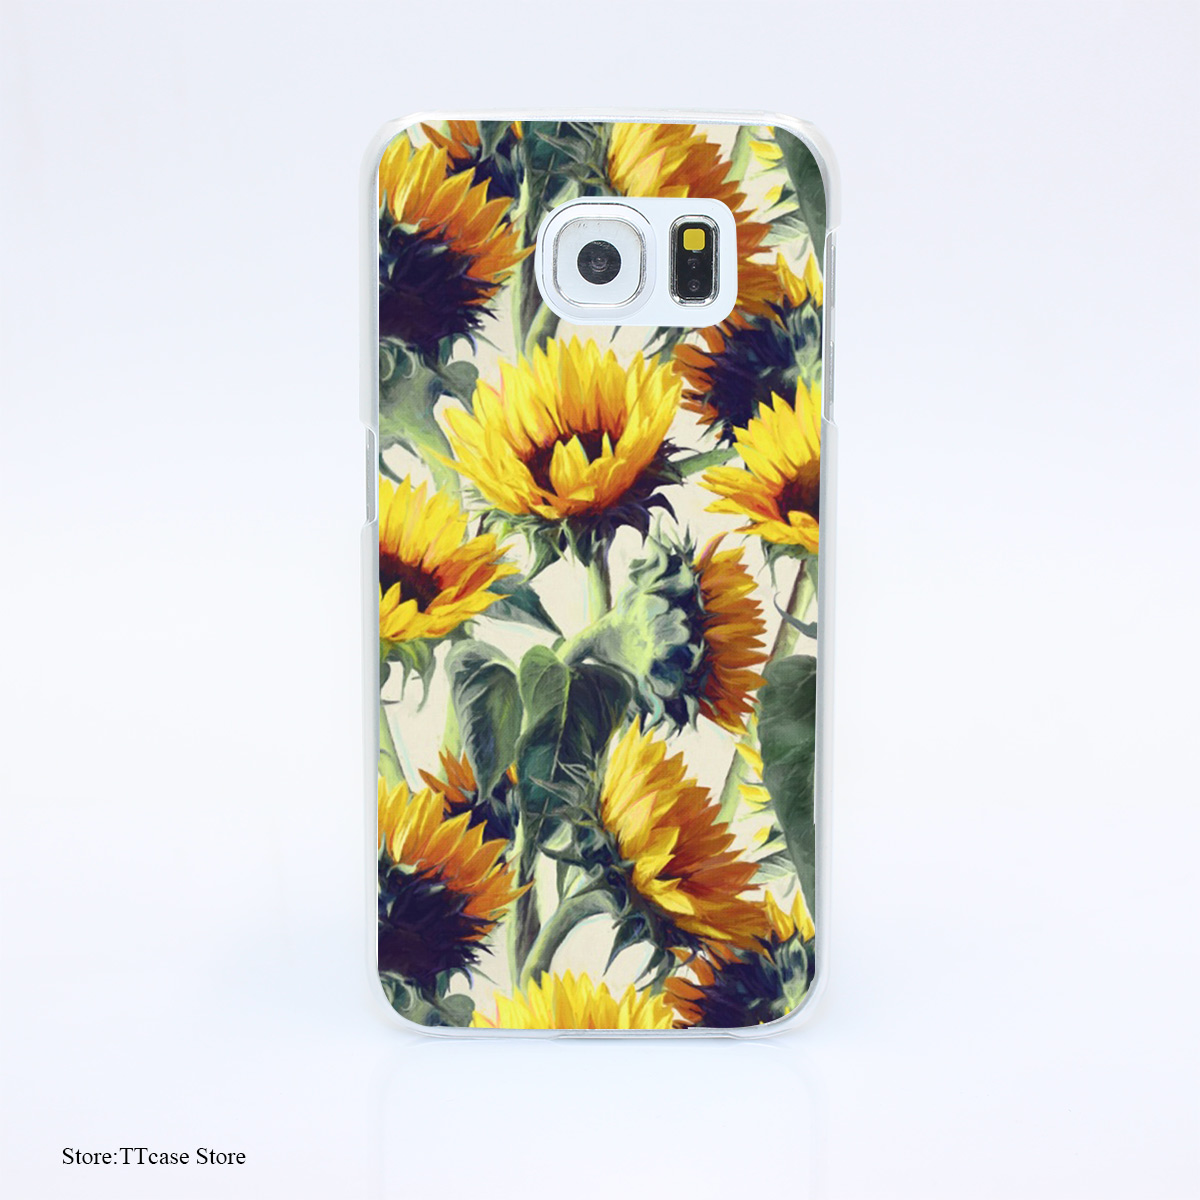 3229G Sunflowers Forever Sbv Print Hard Transparent Case Cover for Galaxy S3 S4 S5 & Mini S6 S7 & edge